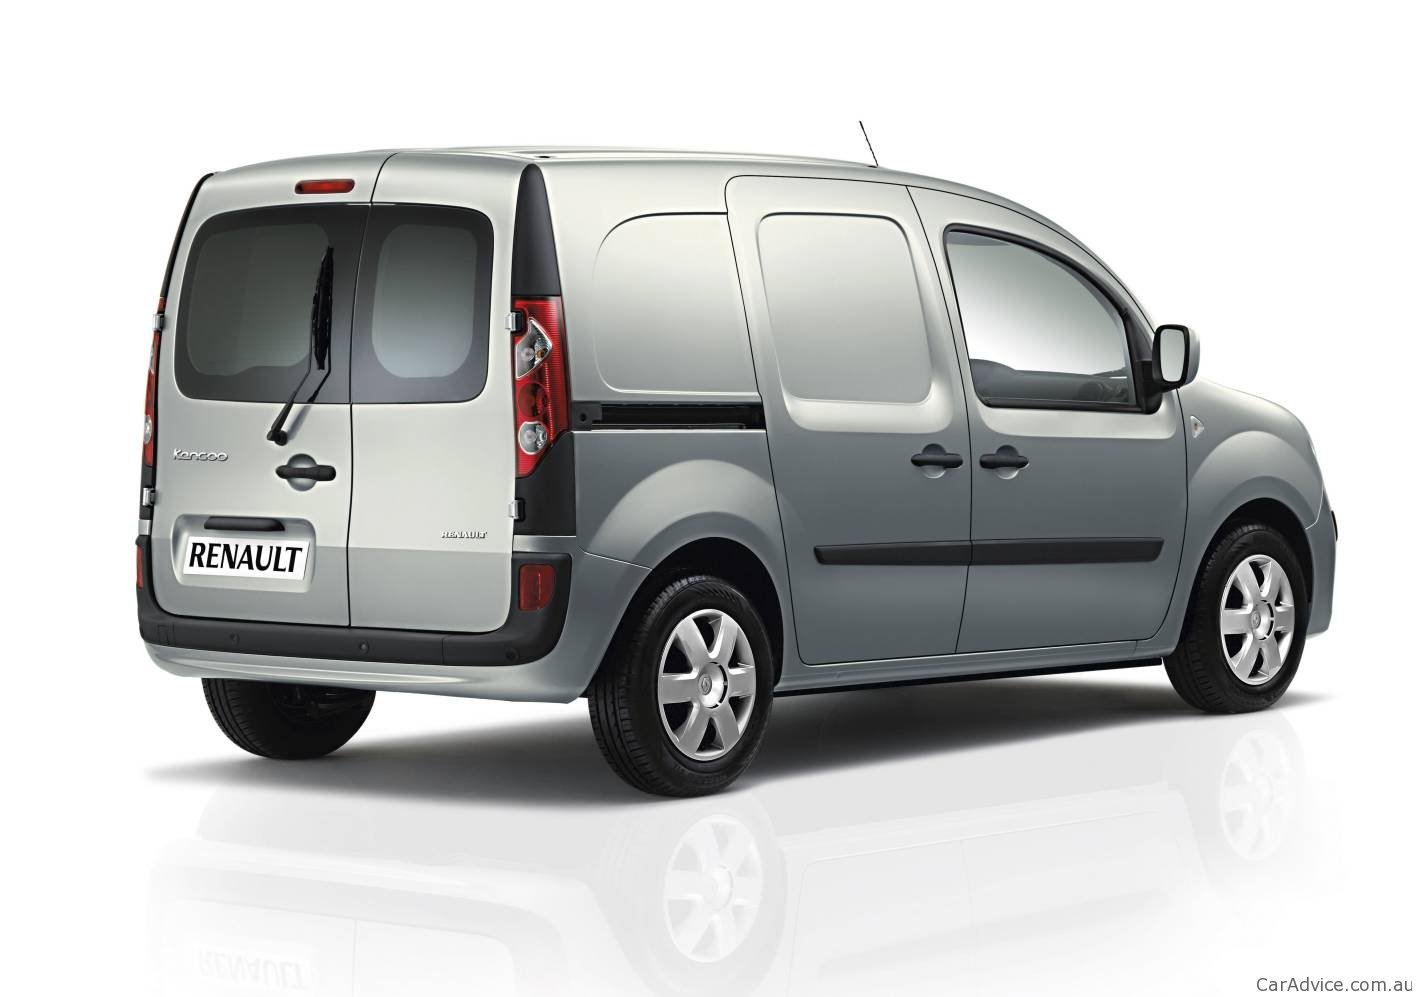 2011 Renault Kangoo Available In Australia Photos 1 Of 3